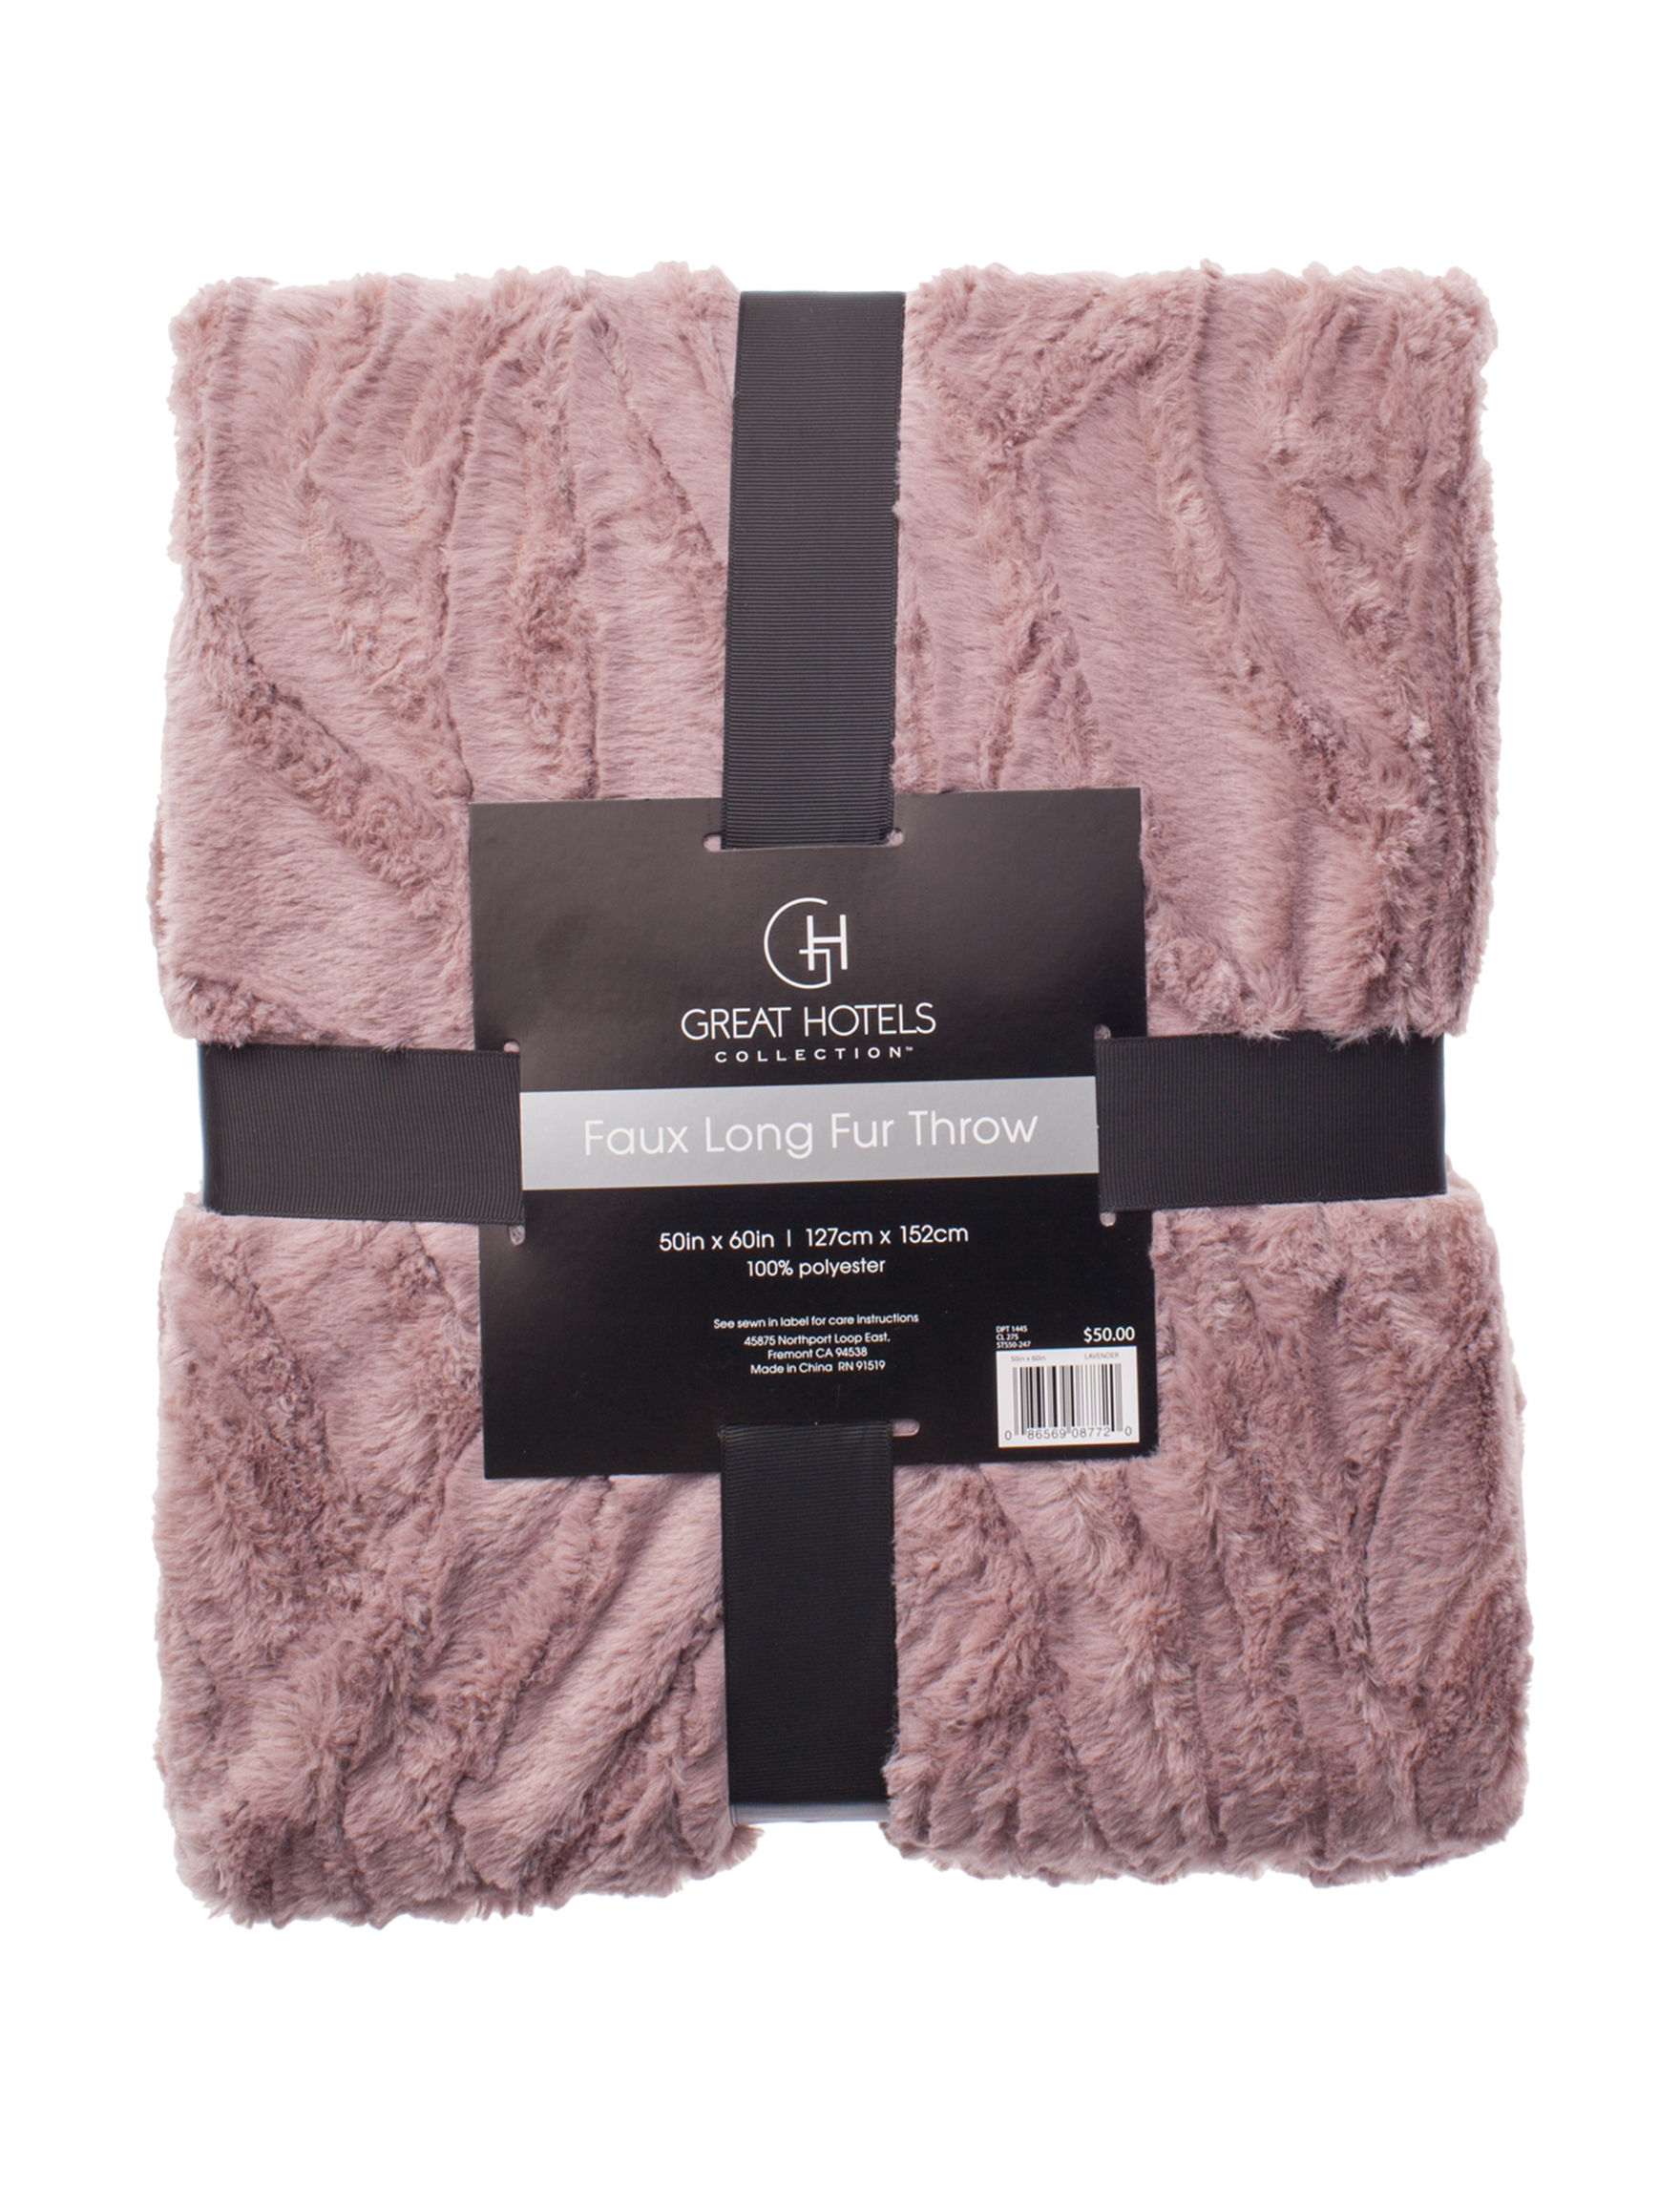 Great Hotels Collection Lavender Blankets & Throws